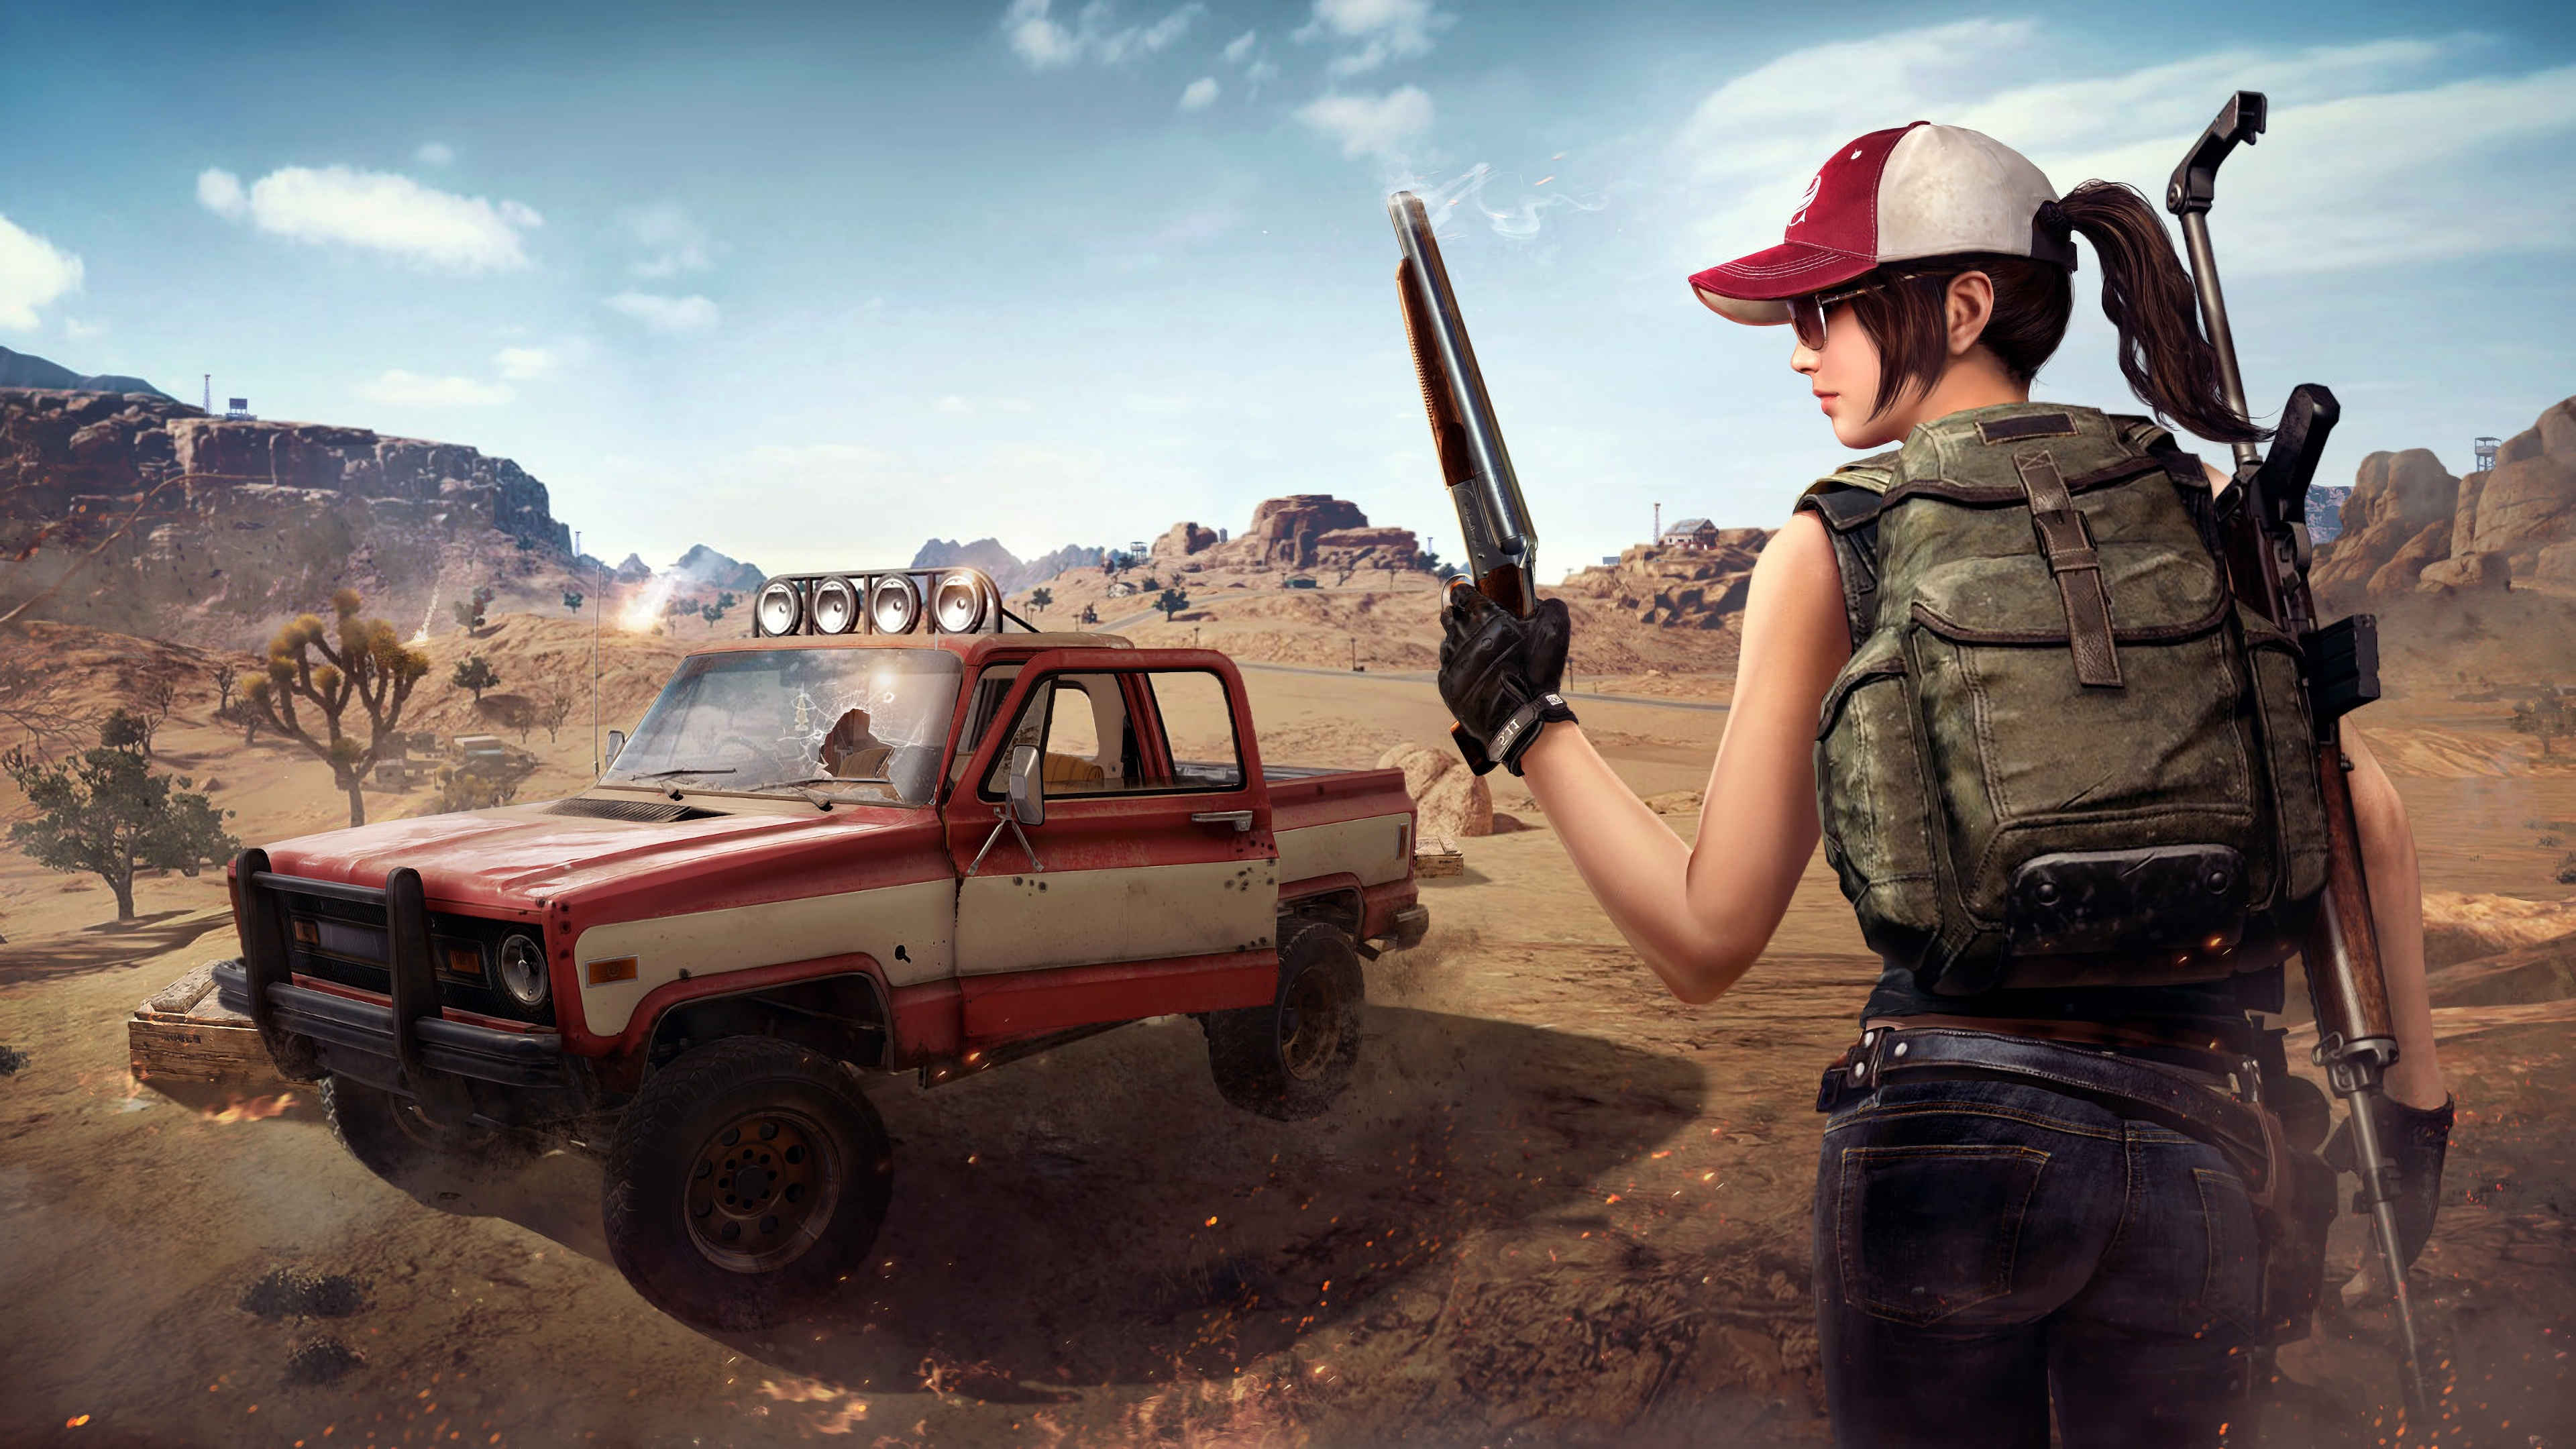 Pubg Girl 4k Hd Games 4k Wallpapers Images Backgrounds Photos